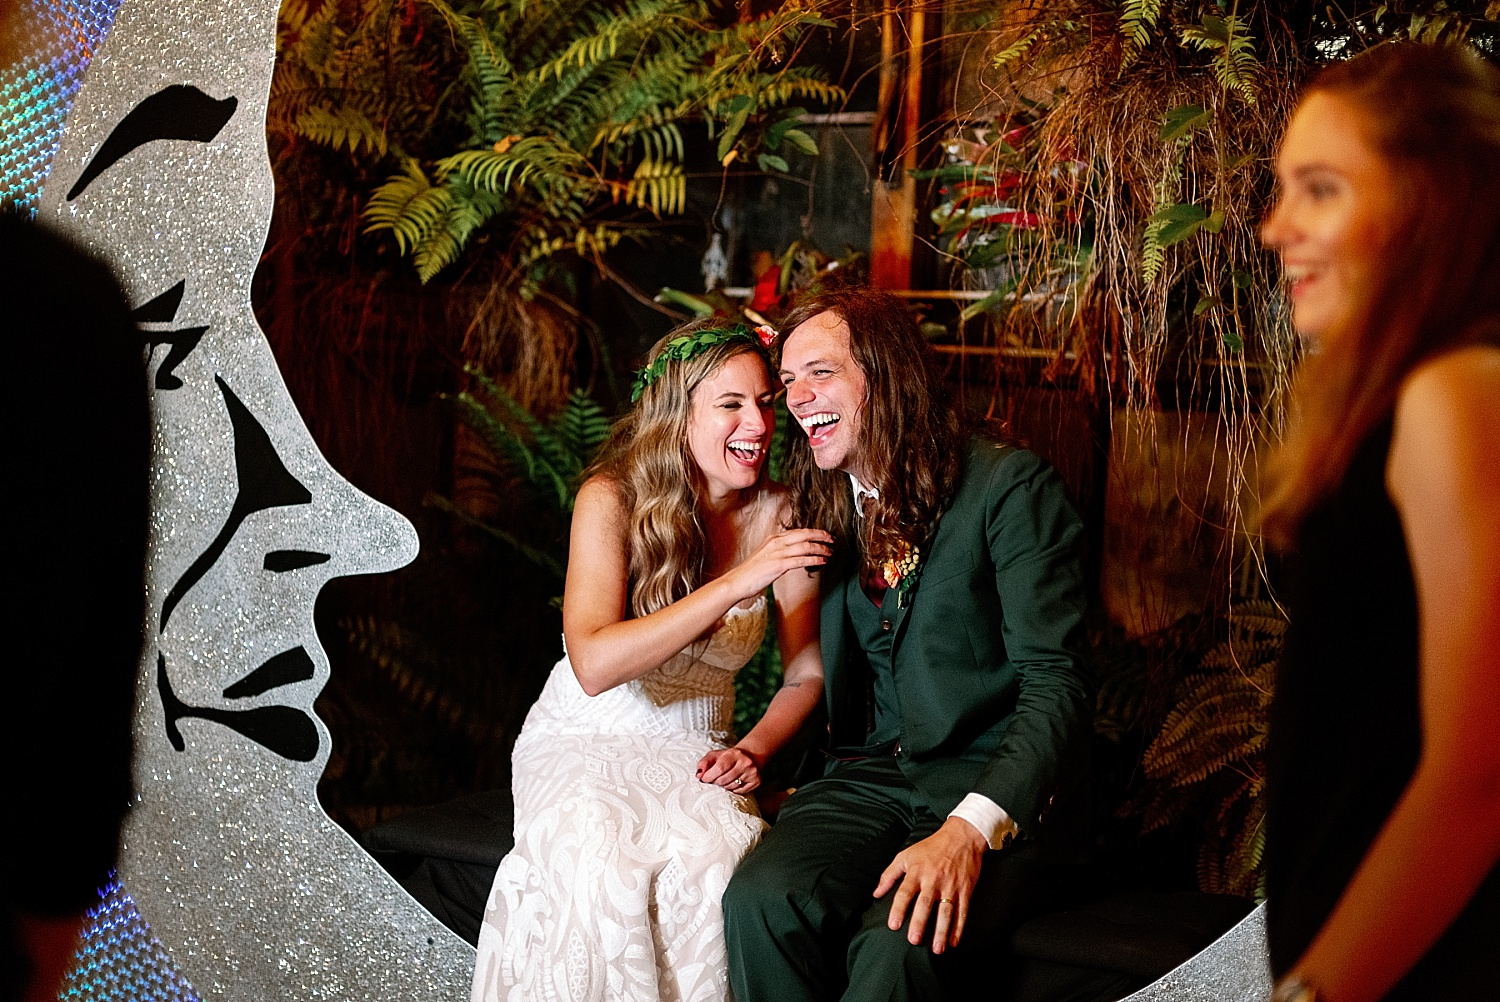 Race and Religious Wedding Photo Booth